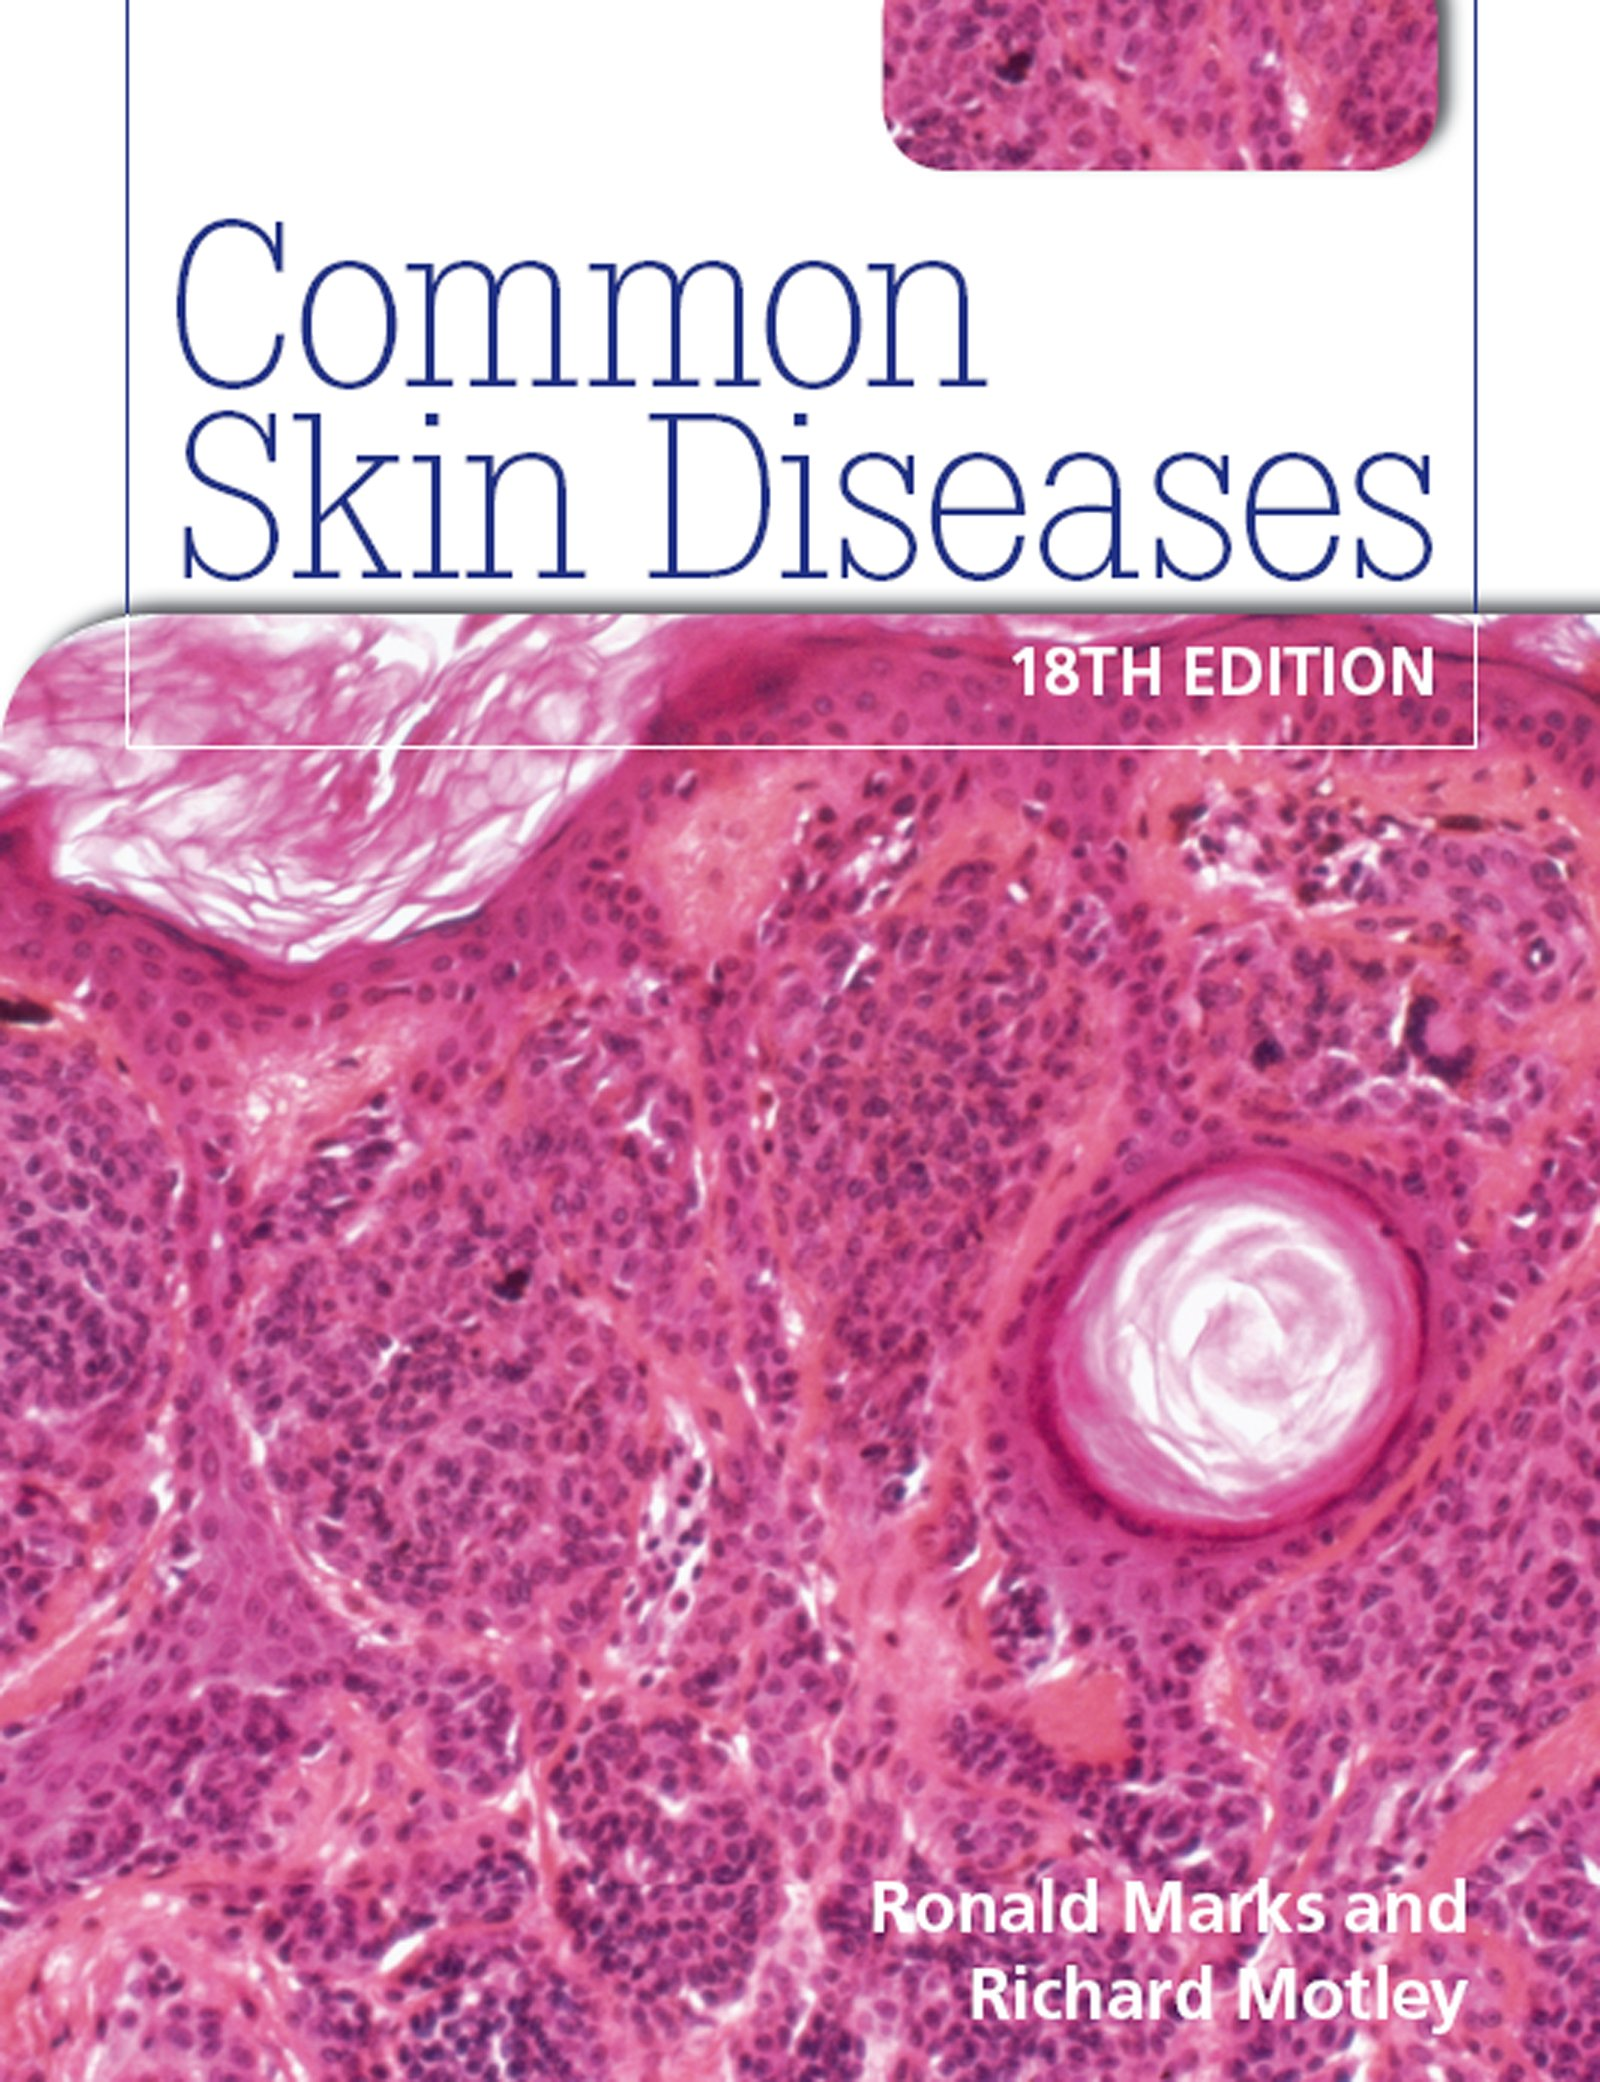 Common Skin Diseases 18th edition